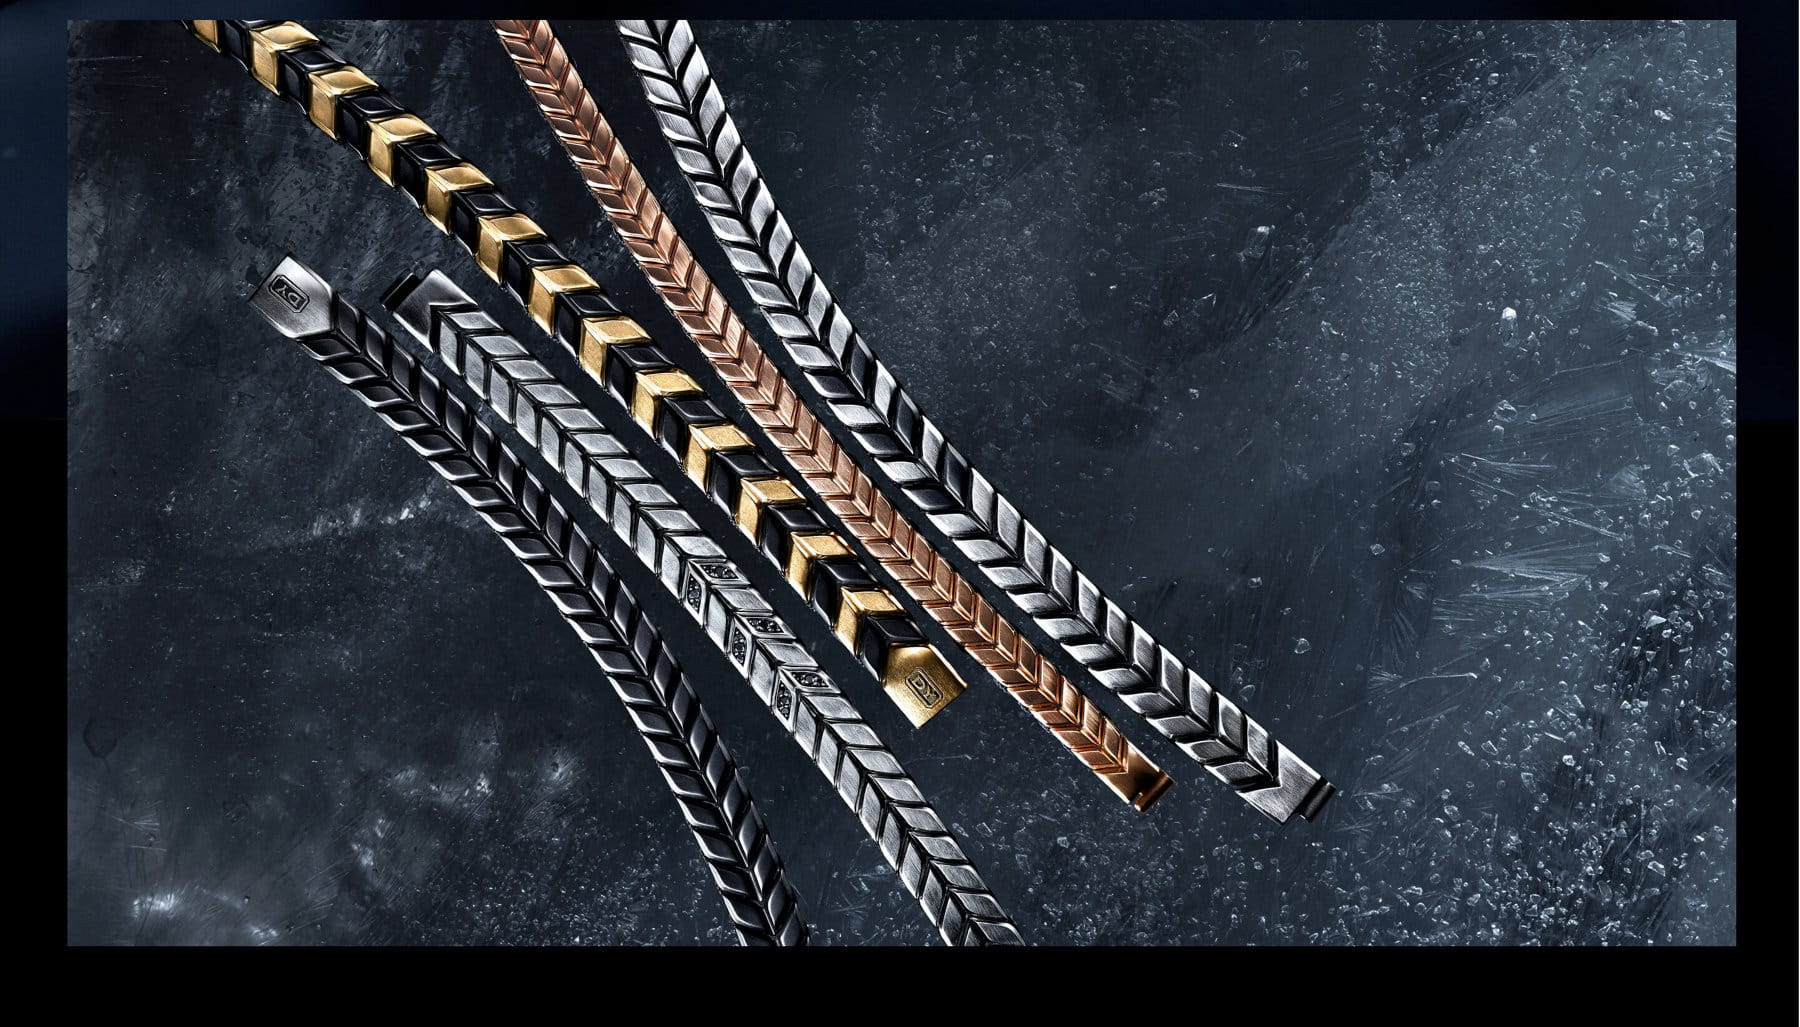 A color photo shows 5 David Yurman men's Chevron bracelets arranged in rows next to each other atop a snow-dusted dark, icy surface. The bracelets are crafted from black titanium with sterling silver, sterling silver with pavé black diamonds, 18K yellow gold and black titanium, 18K rose gold or sterling silver with black titanium.